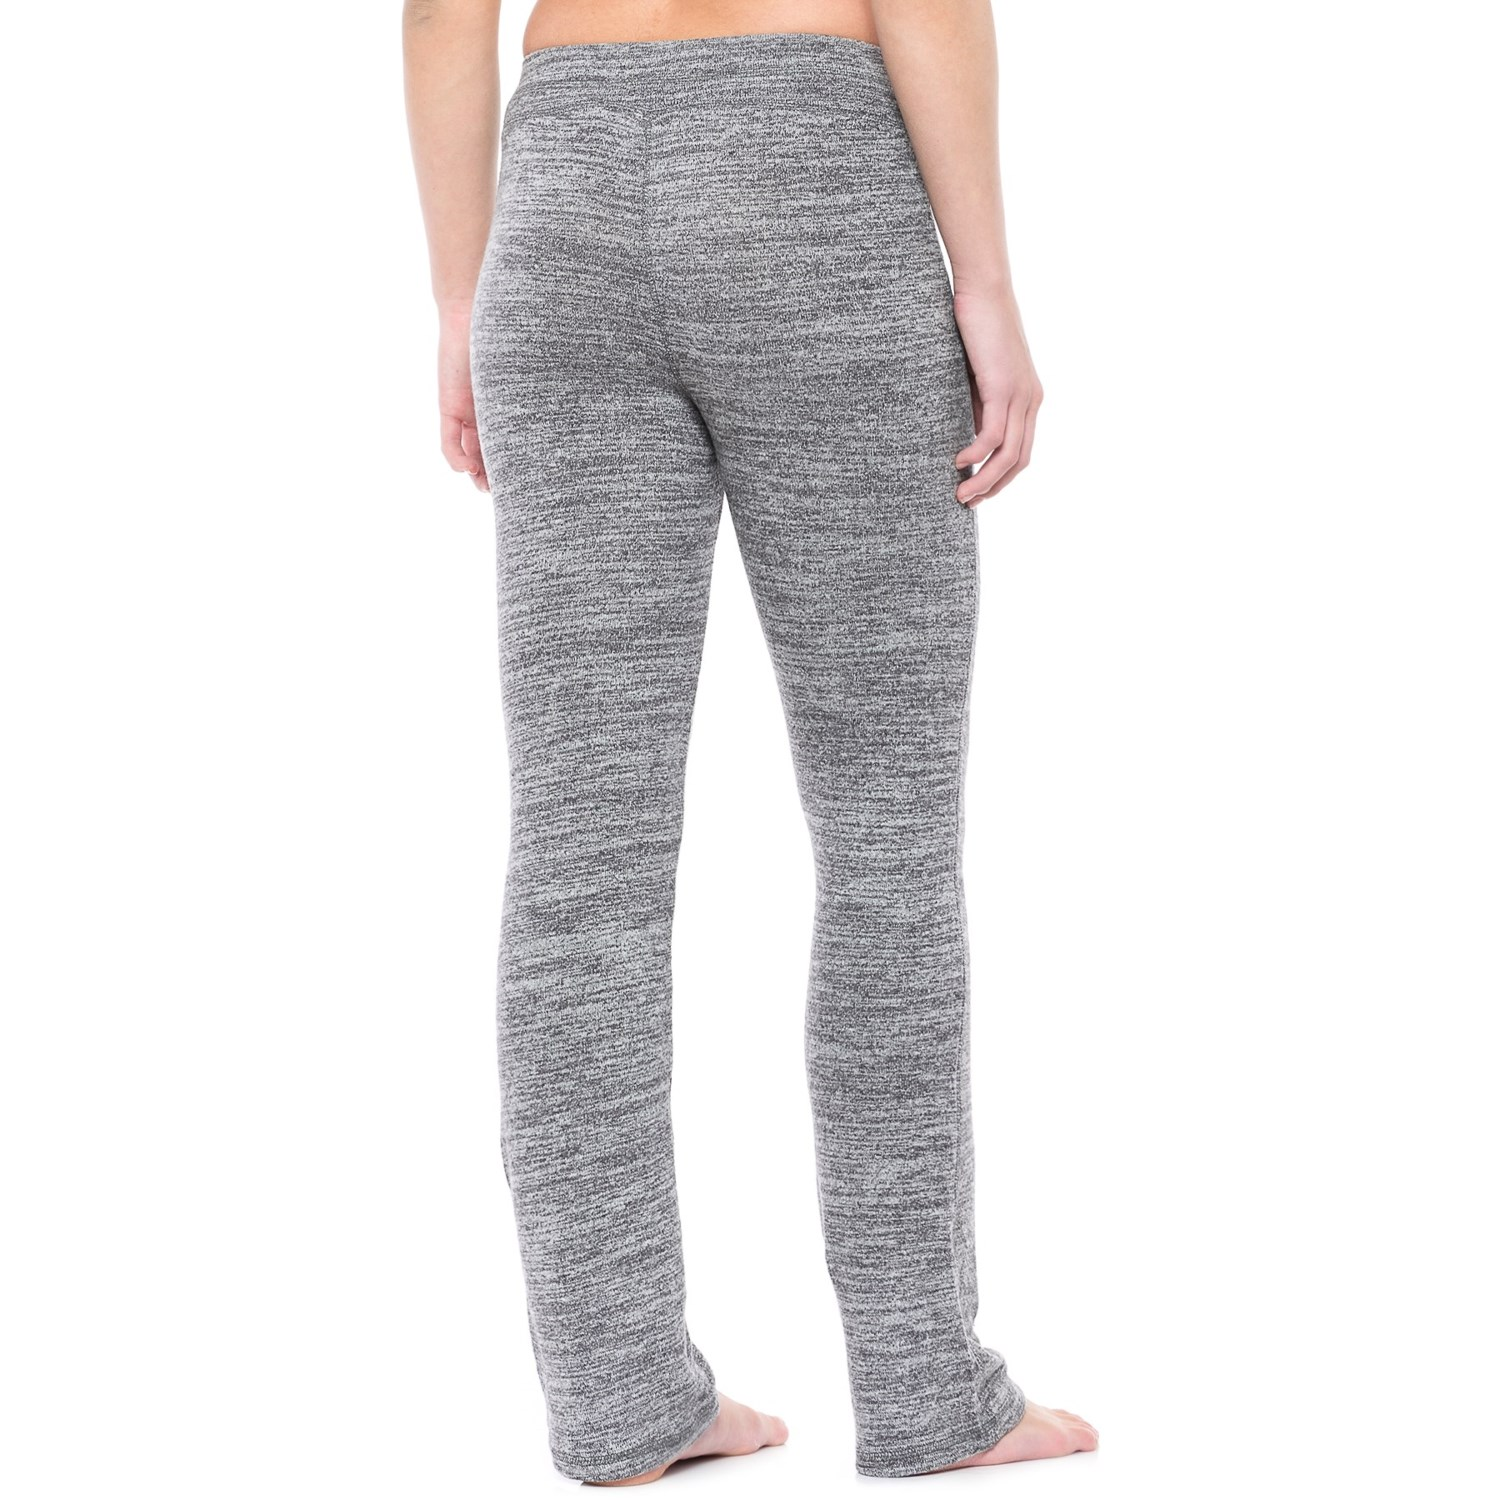 company pants spartan brooksspartanpantm running comfort trails brooks pant products comforter twisted moving ashp m